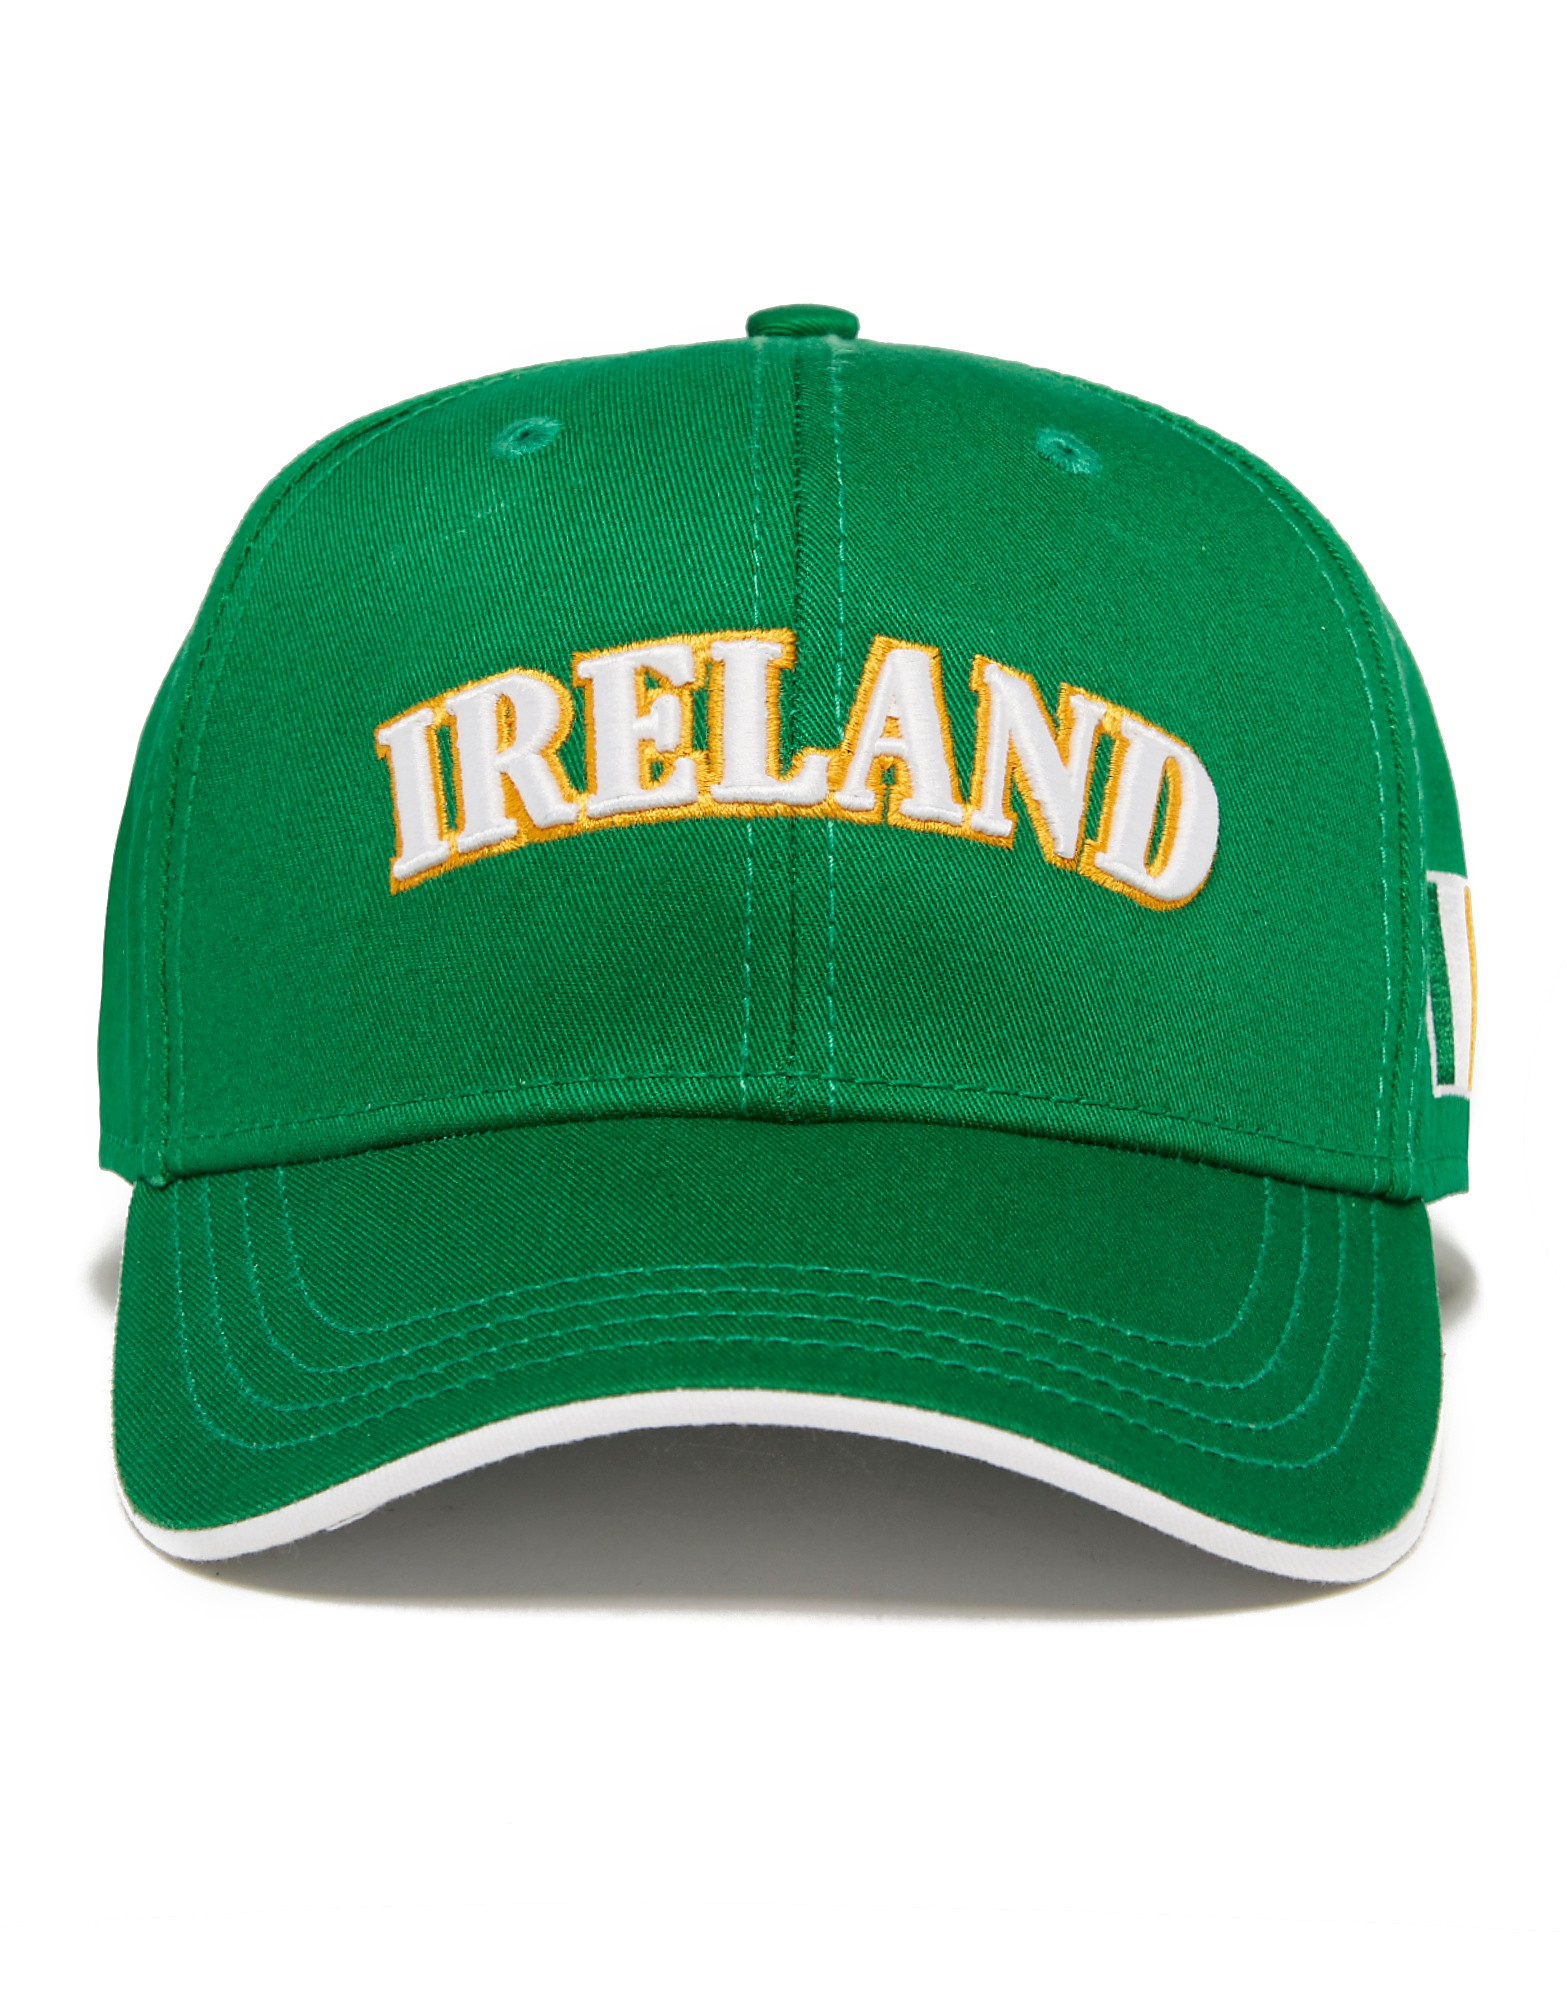 Official Team Casquette Irlande